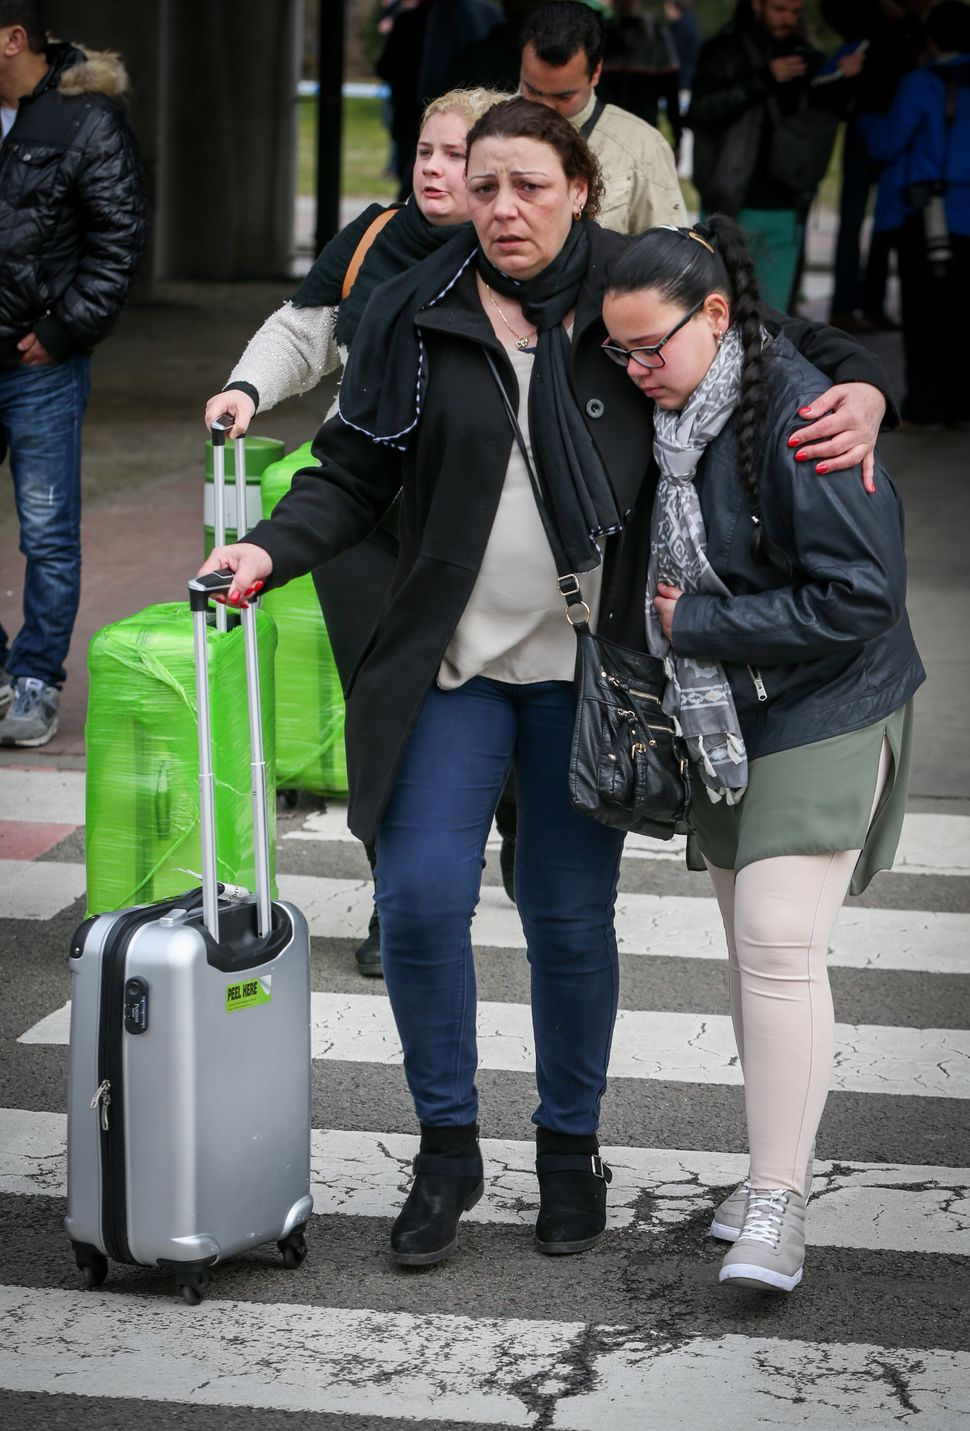 People are evacuated from Brussels Airport, in Zaventem, on March 22, 2016.